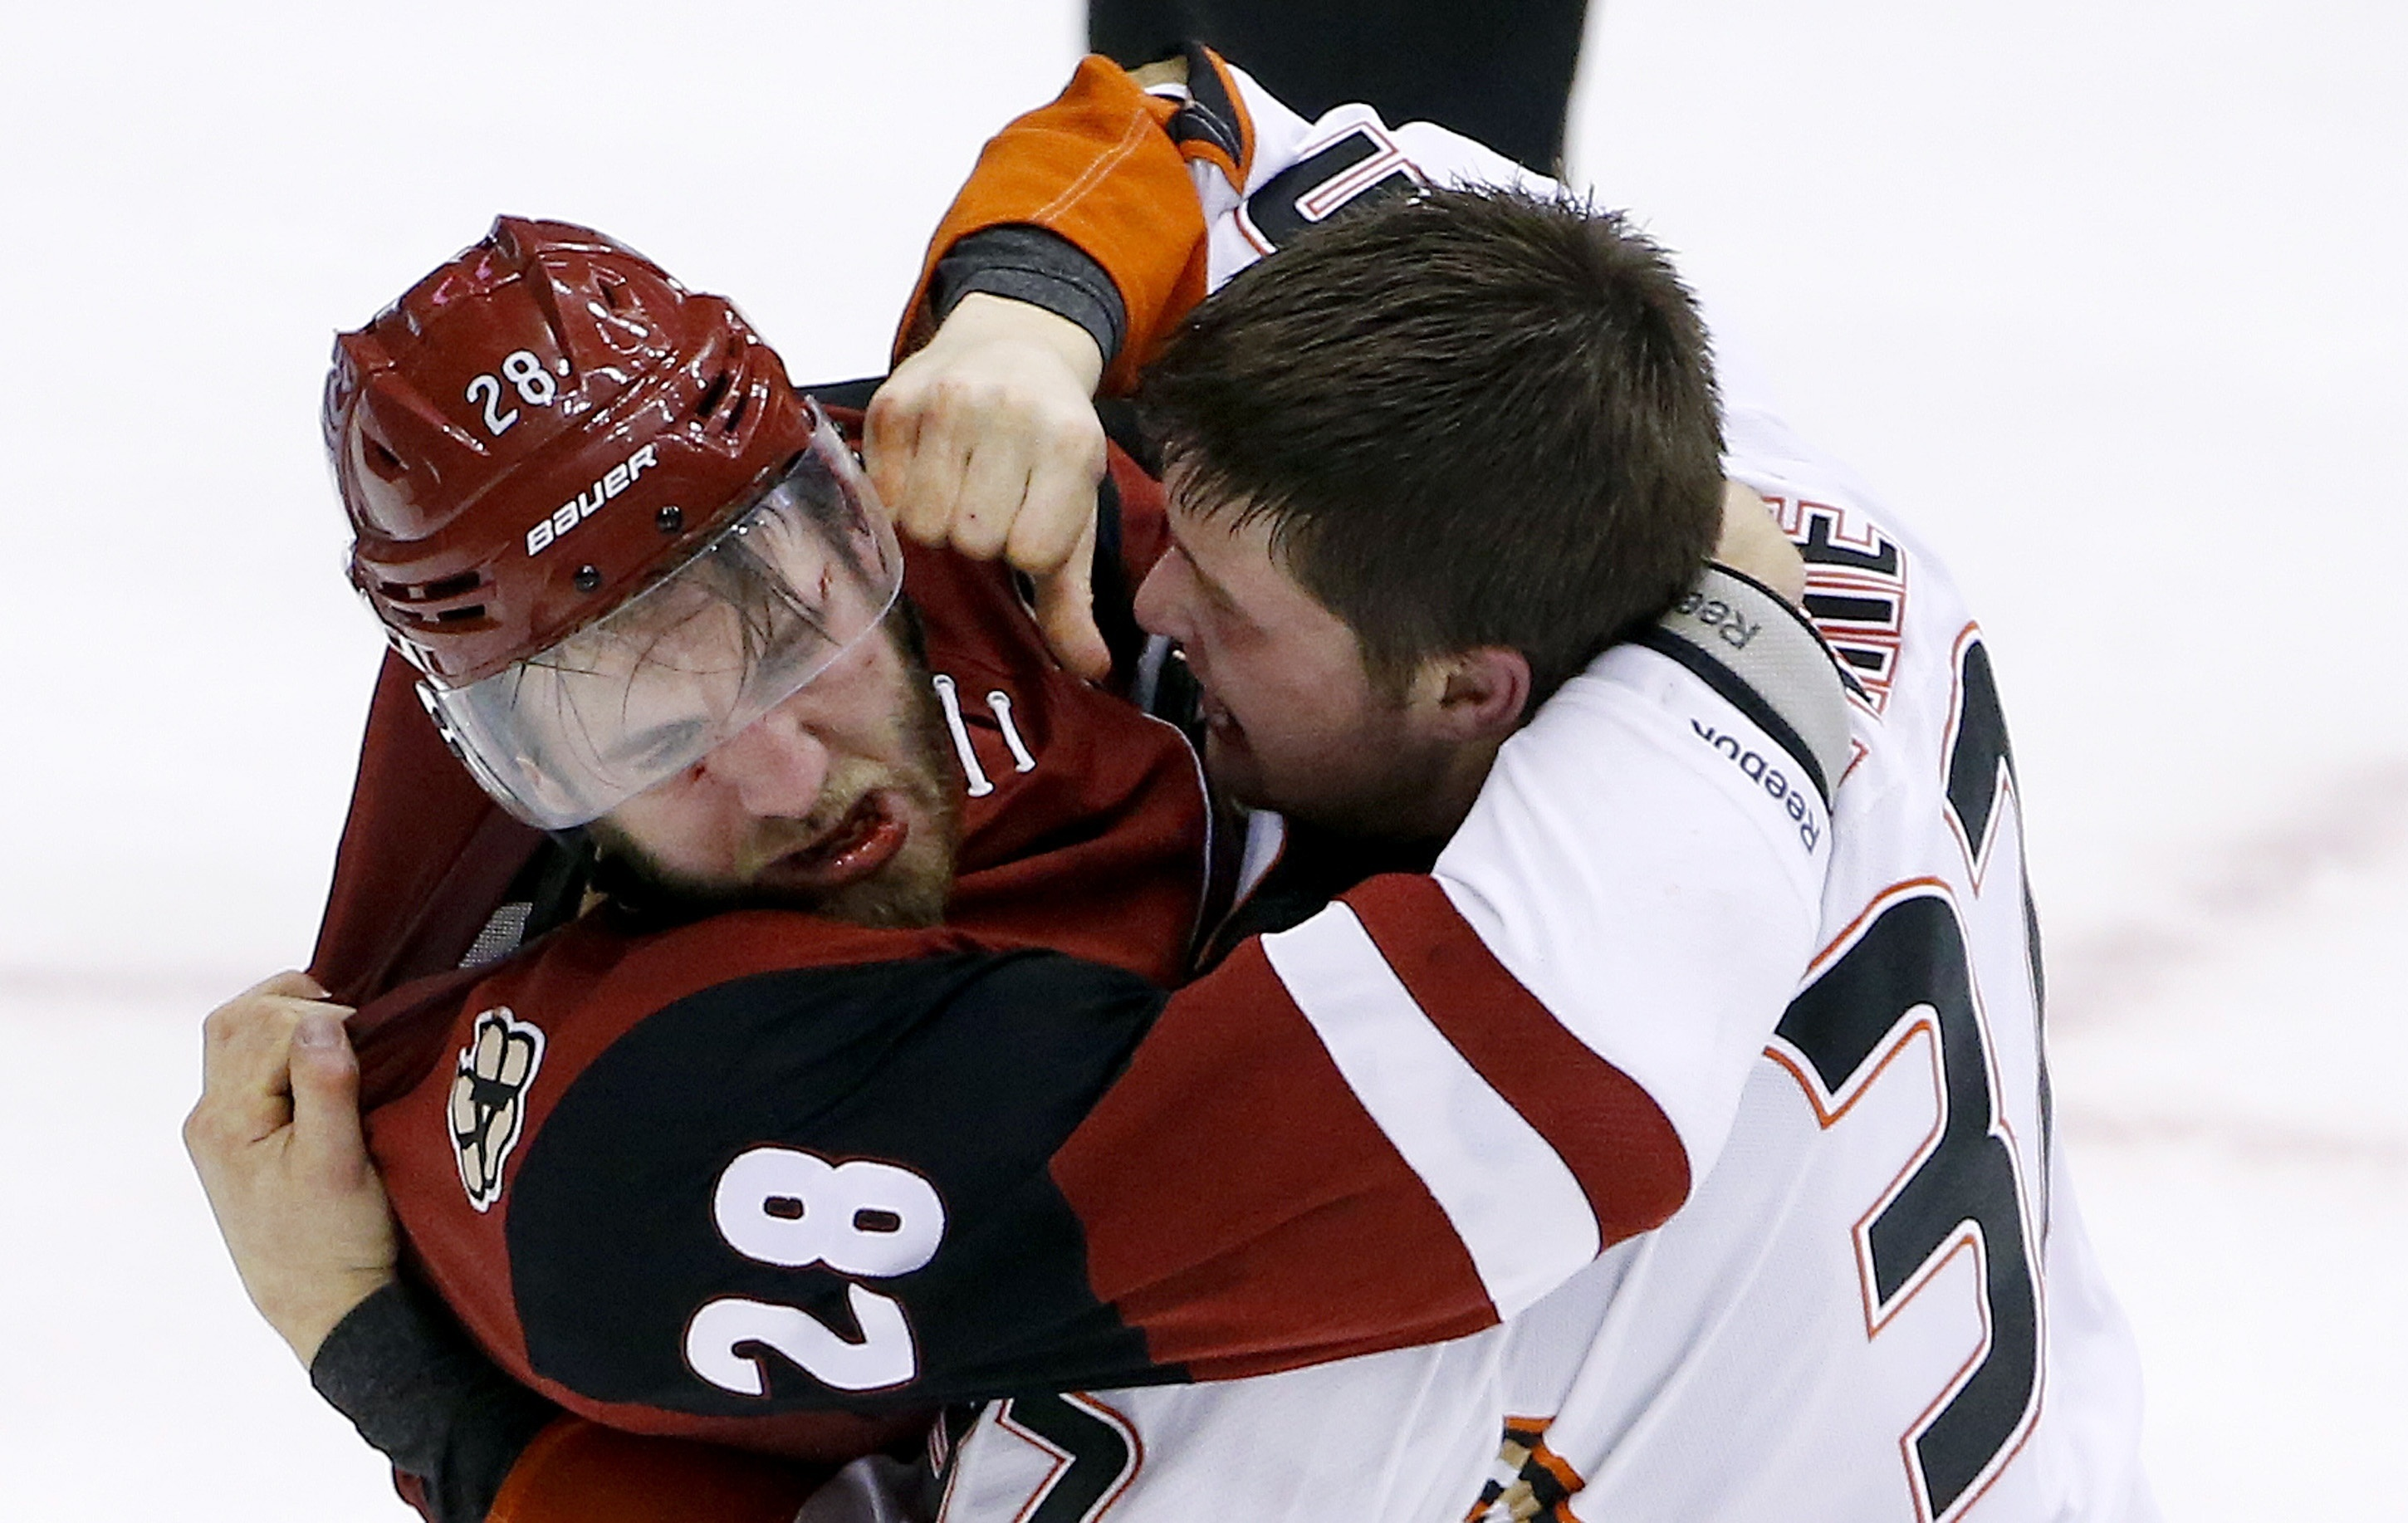 FILE - In this March 3, 2016, file photo, Anaheim Ducks' Nick Ritchie, right, fights with Arizona Coyotes' Jarred Tinordi (28) during the third period of an NHL hockey game in Glendale, Ariz. Tinordi has been suspended for 20 games without pay for violati